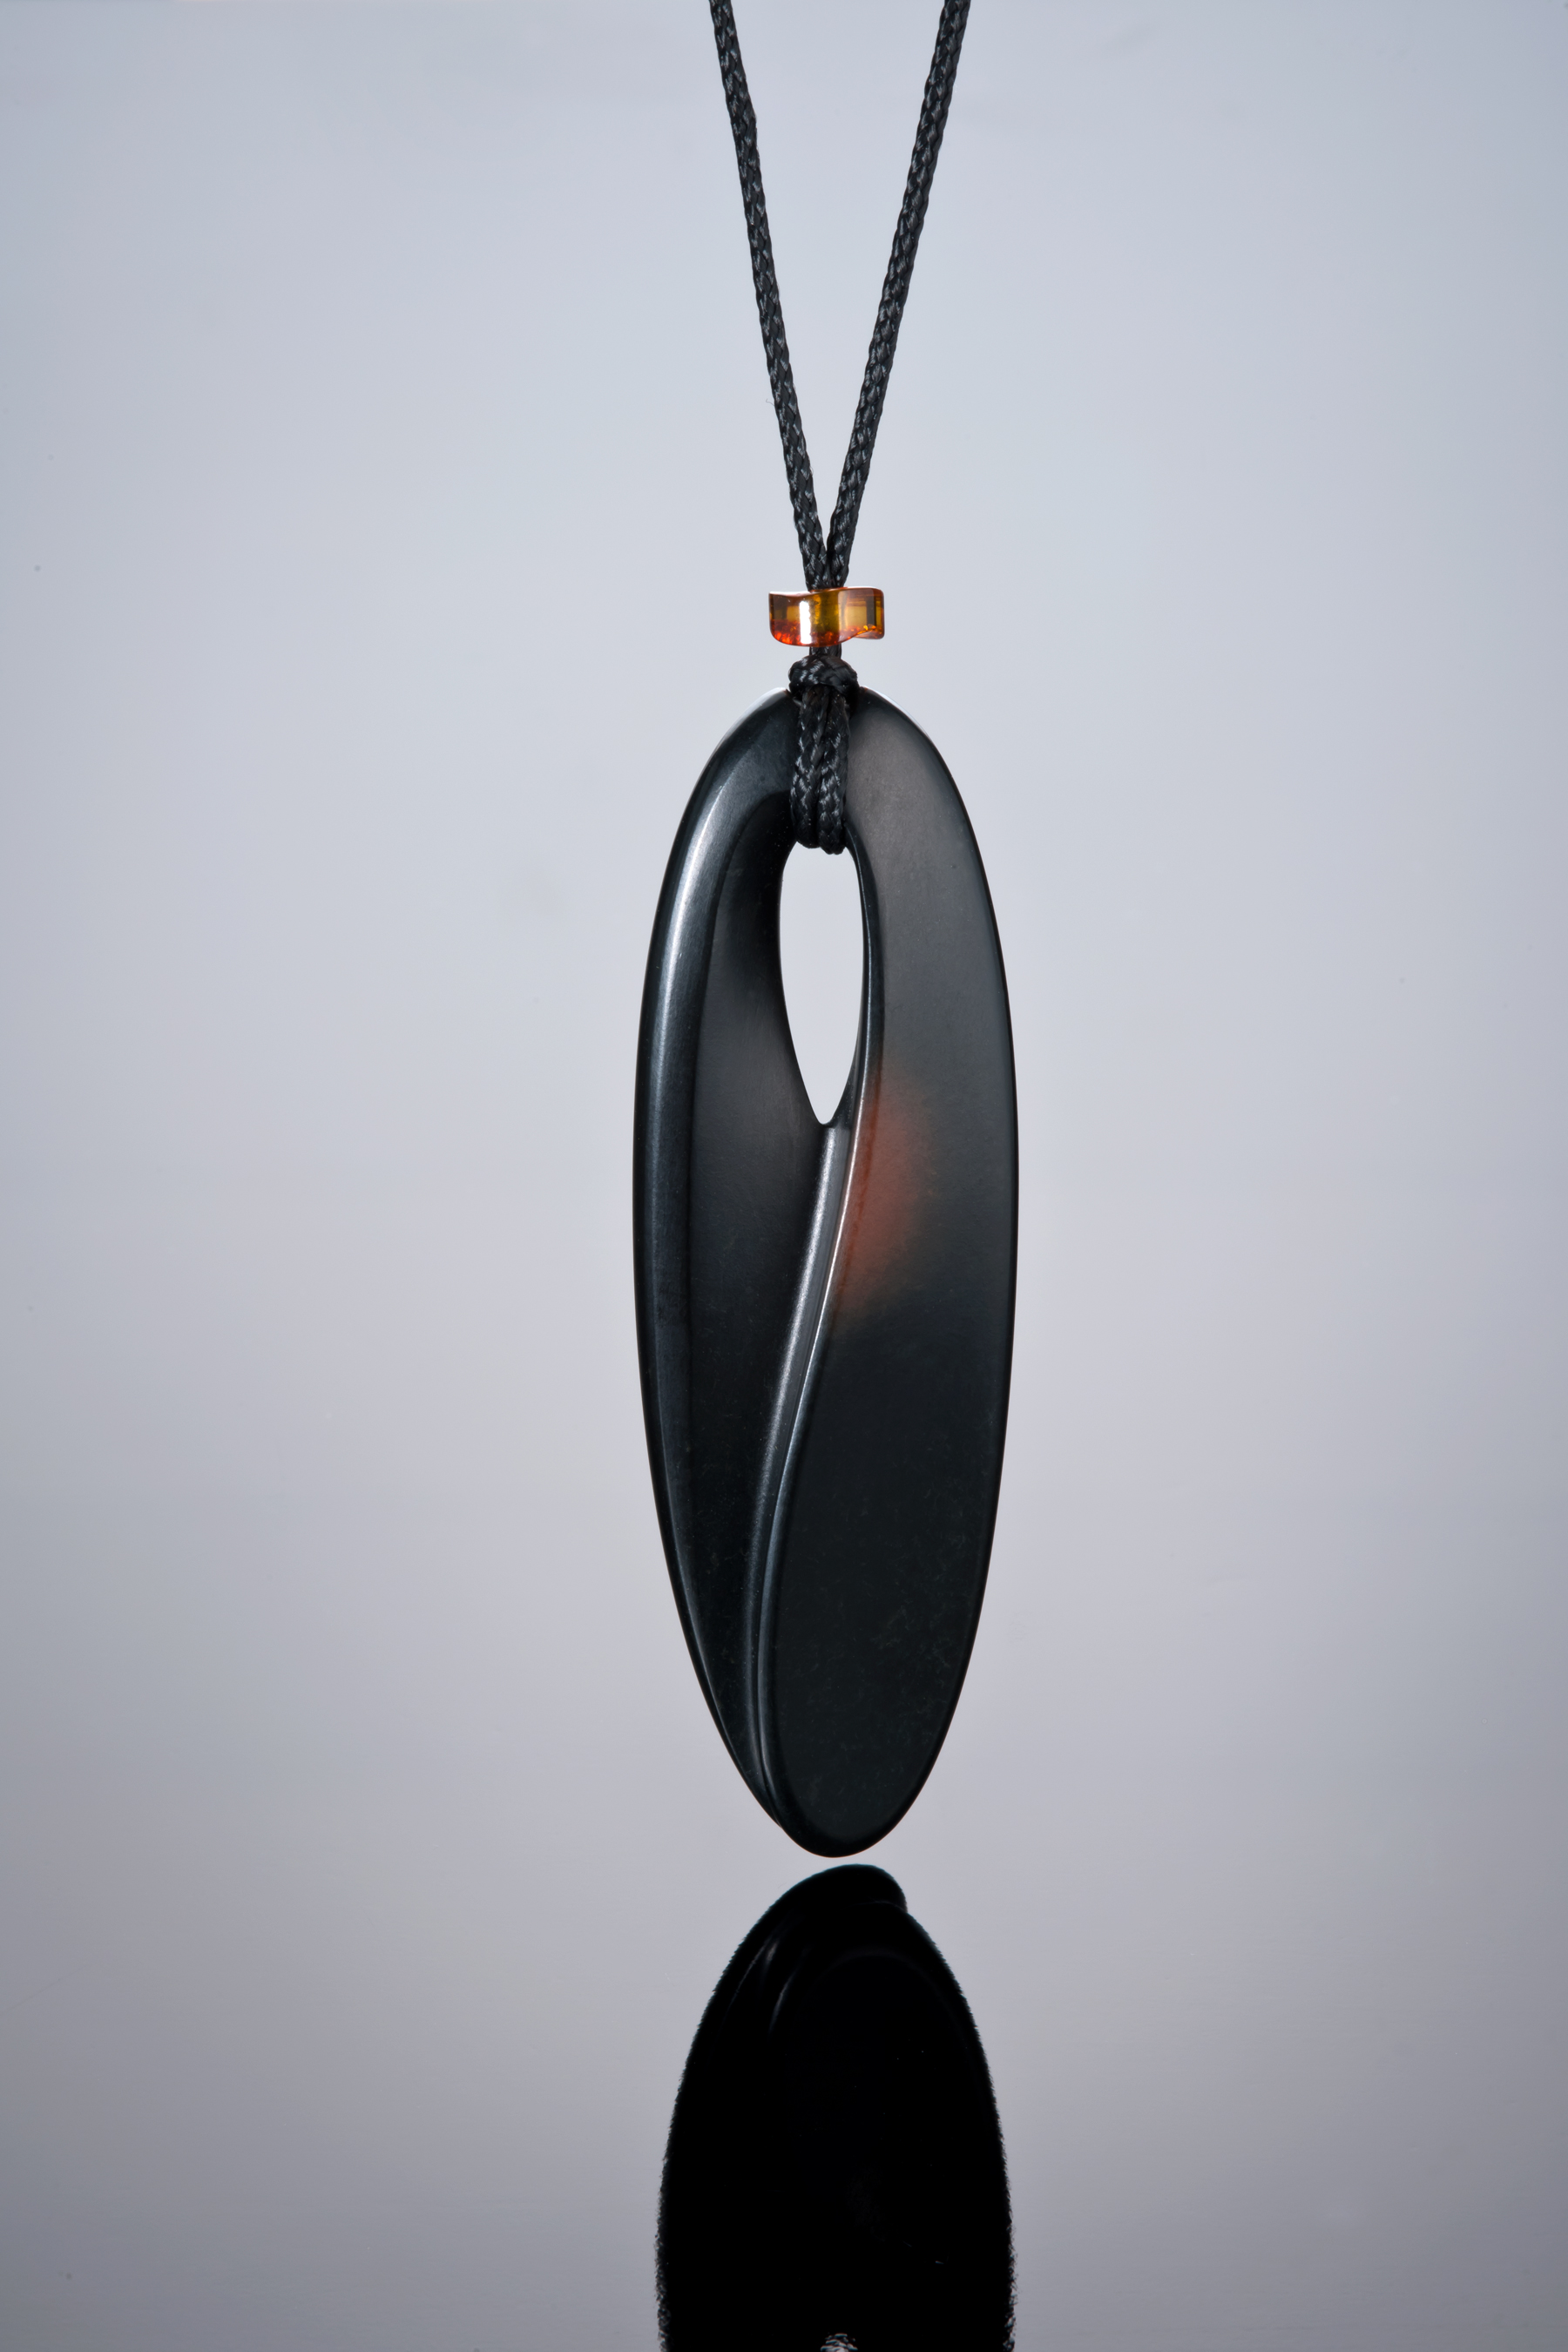 Above is a 3-inch pendant carved by Peter Schilling from Edward's black jade with some of the rind shown.  (Photo: Robert Weldon)